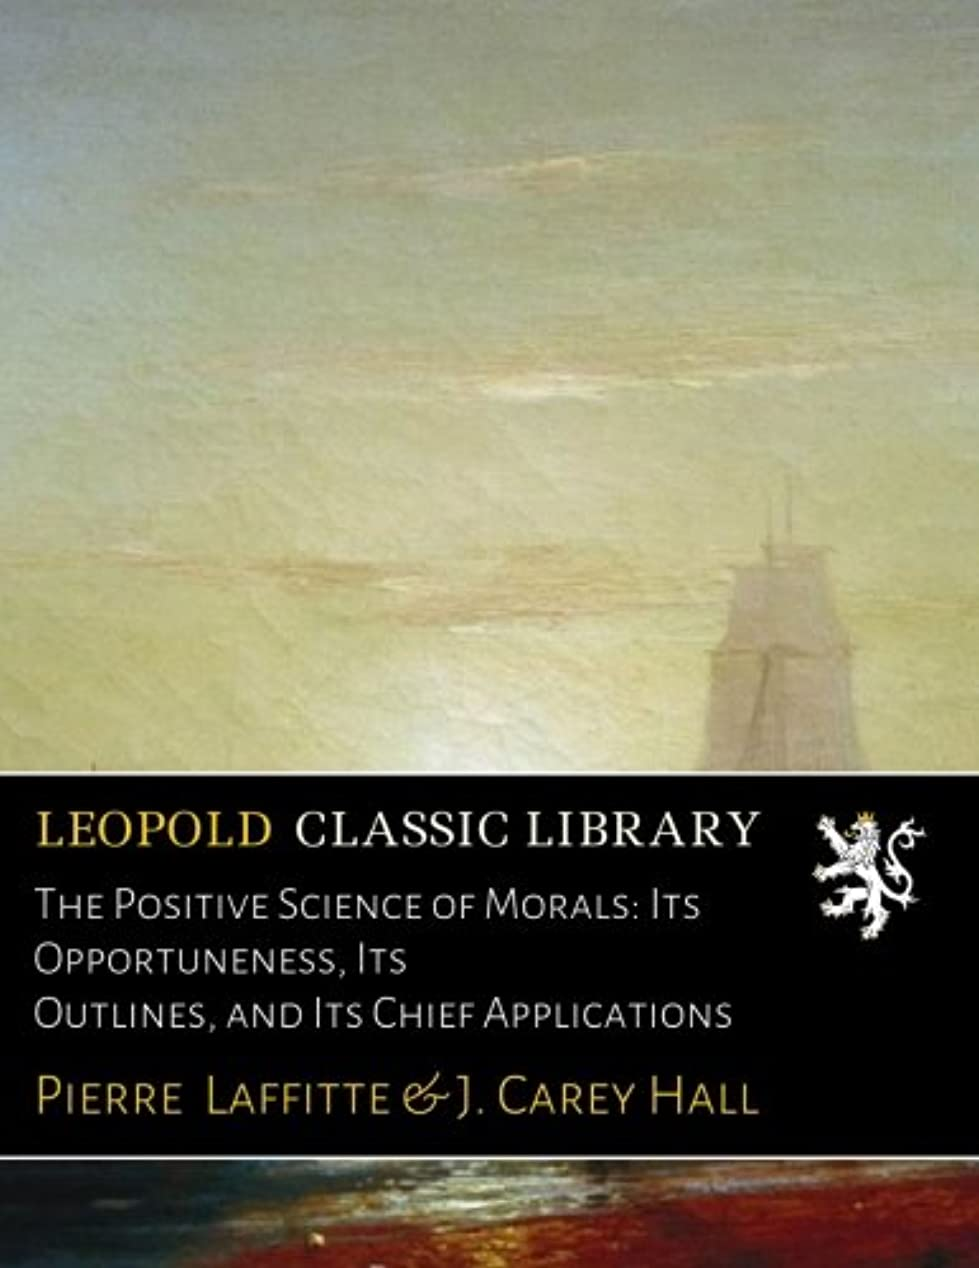 The Positive Science of Morals: Its Opportuneness, Its Outlines, and Its Chief Applications